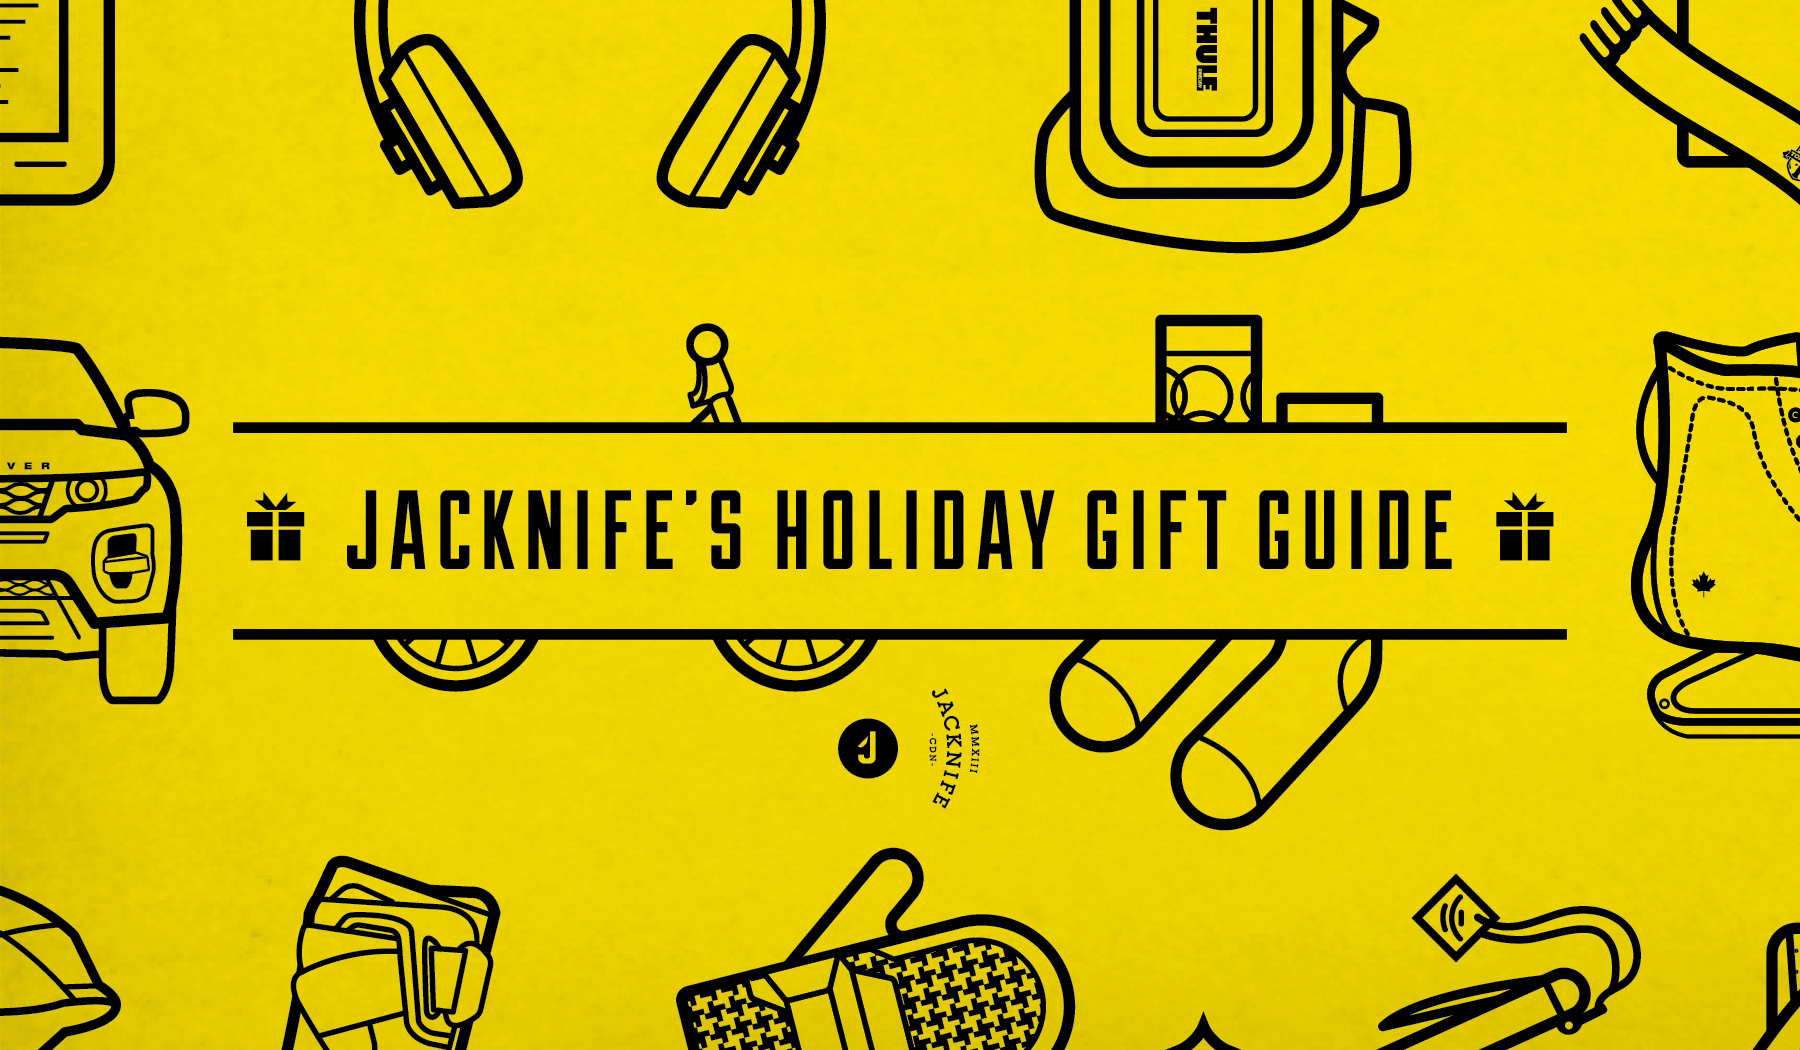 Jacknife's Holiday Gift Guide